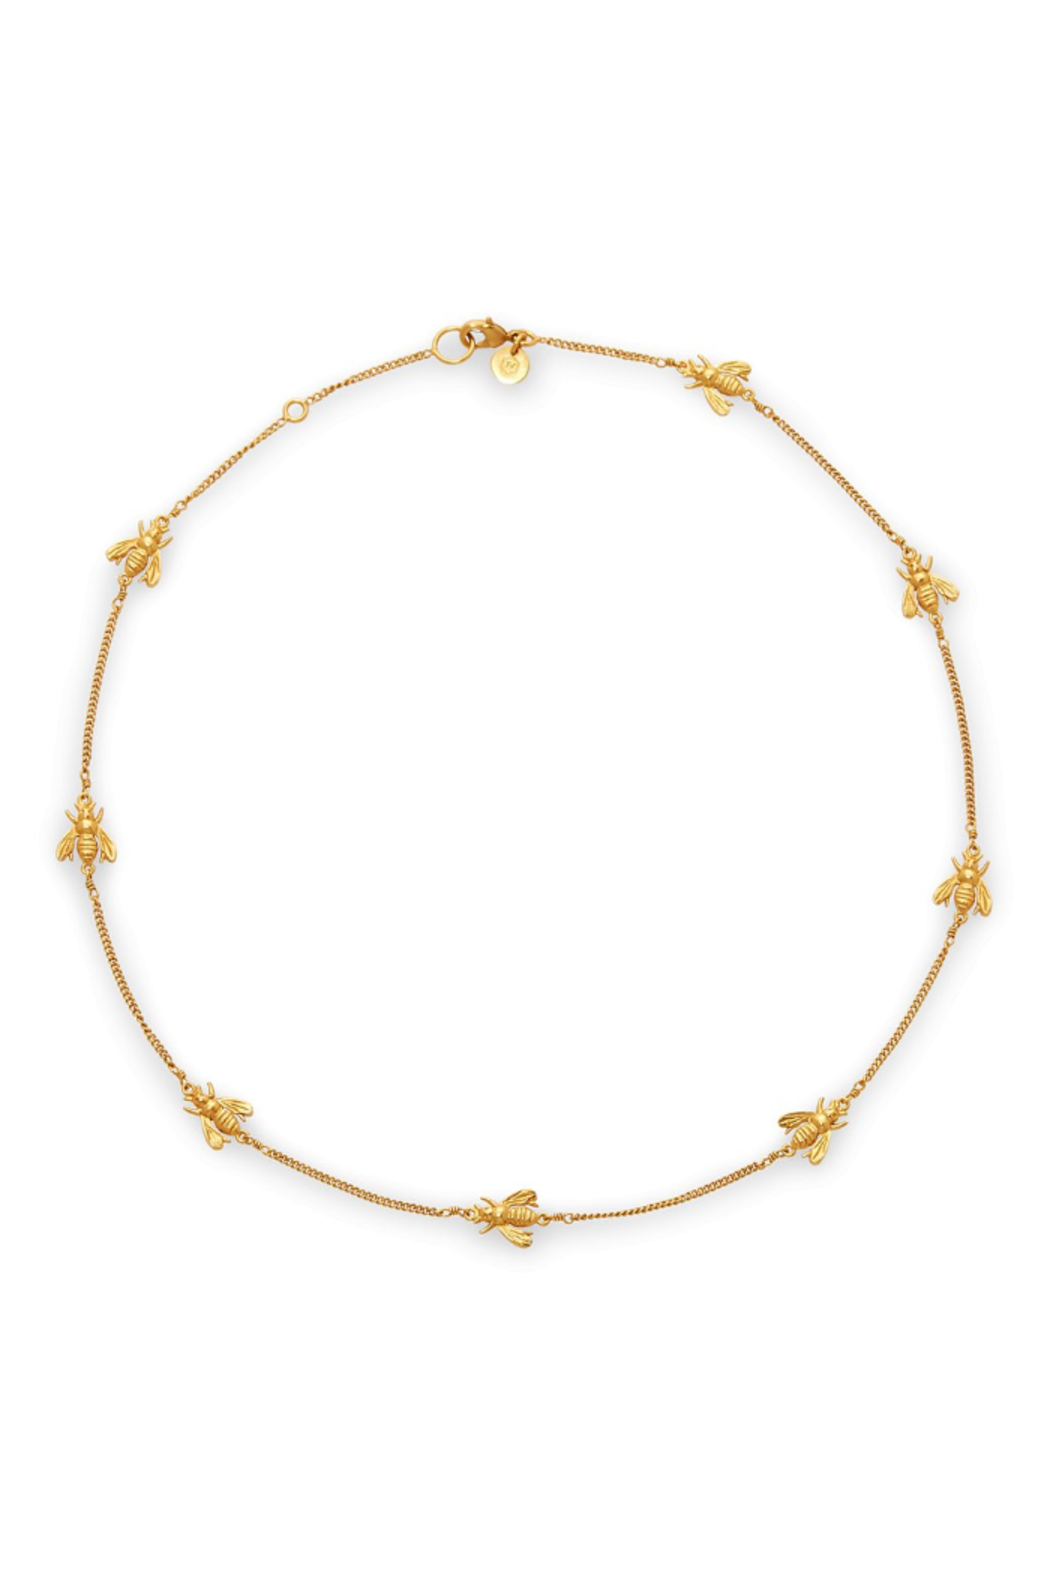 The Birds Nest Bee Delicate Necklace-Gold - Front Cropped Image